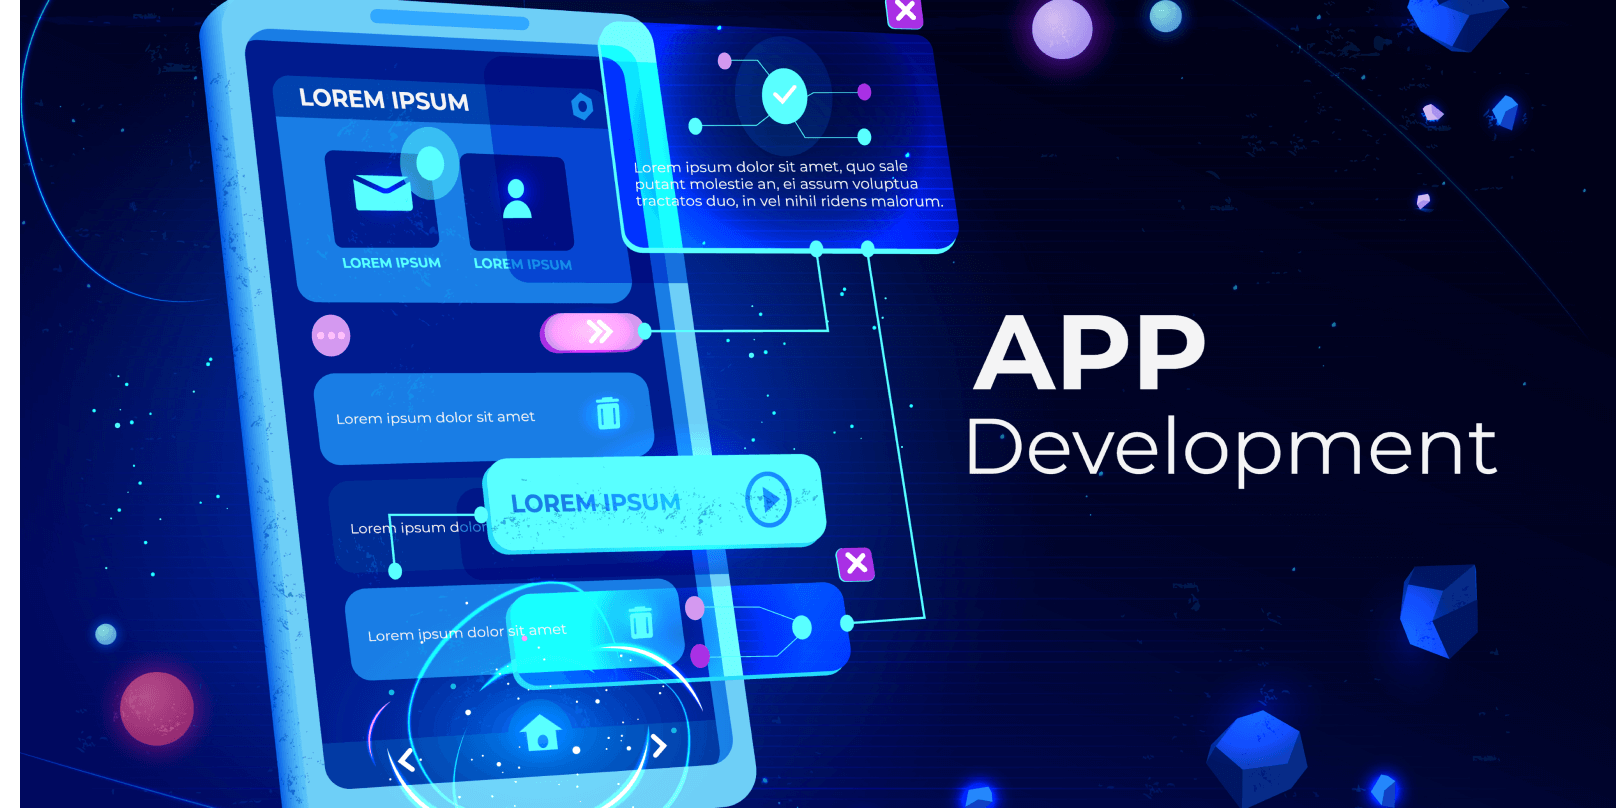 The best technologies for mobile apps development